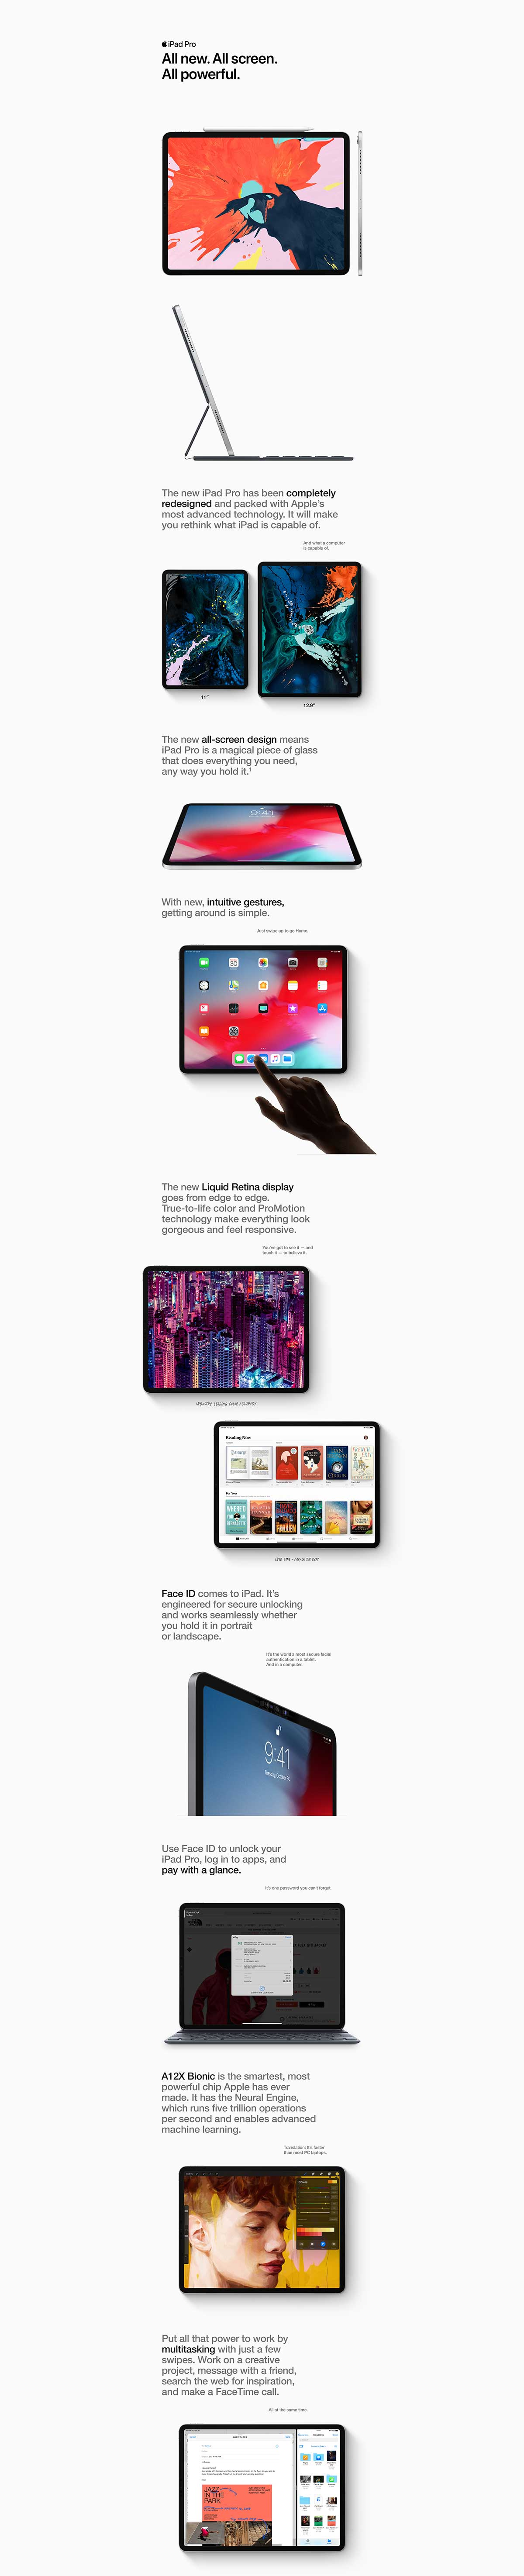 iPad Pro 12.9 Product Overview part 1